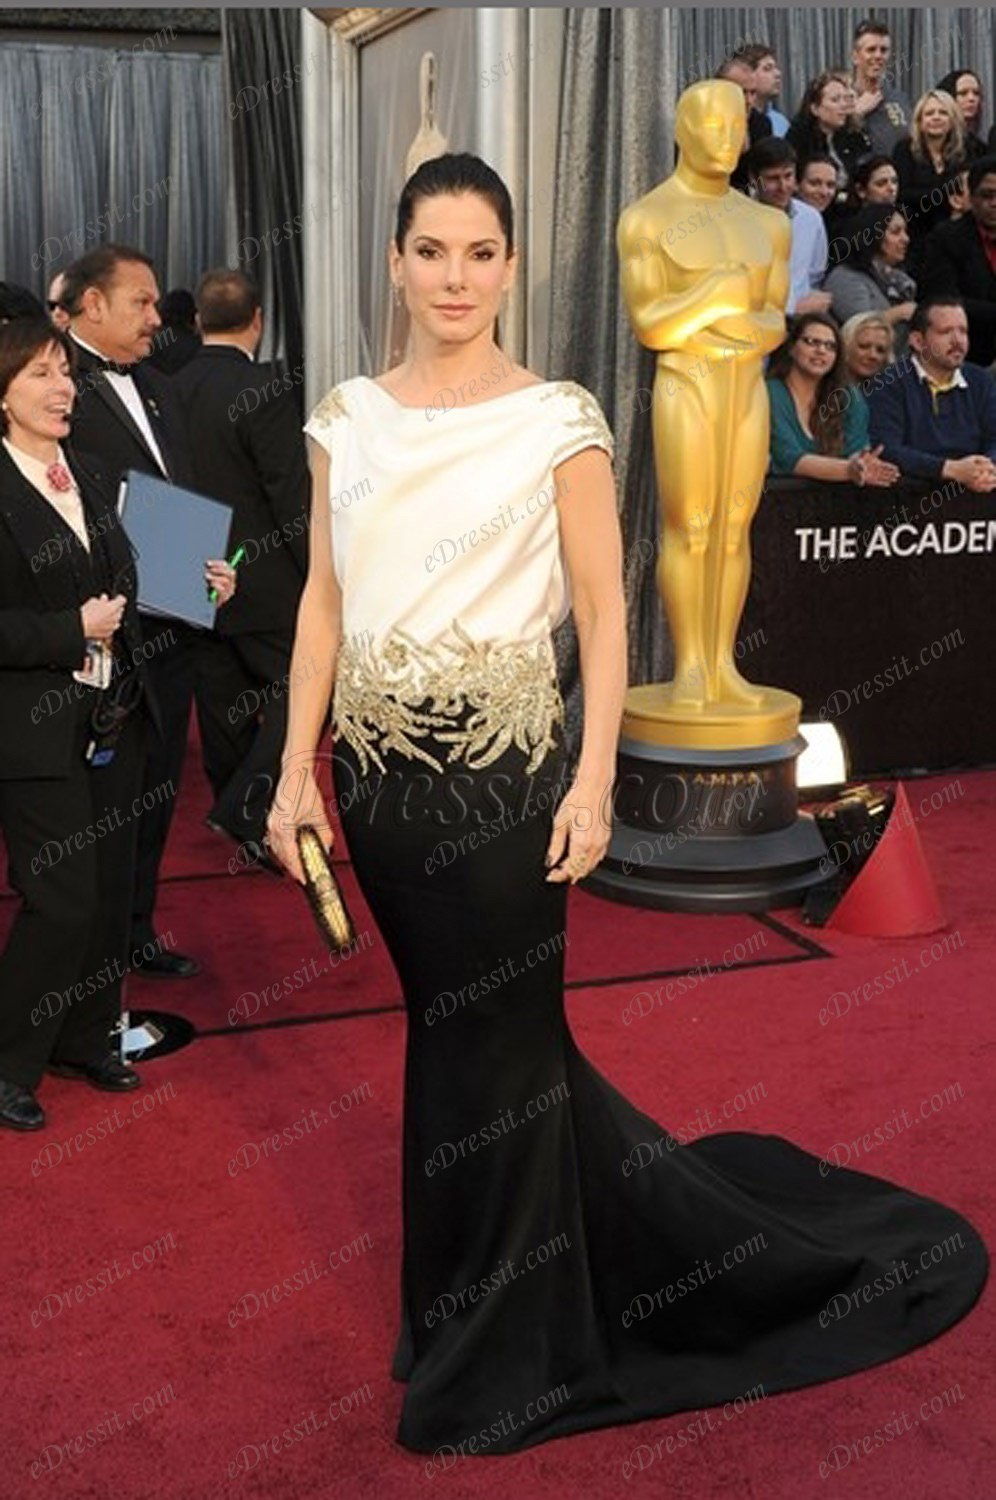 Clearance Sale ! eDressit Sandra Bullock 84th Oscar Awards Dress (cm1219B)